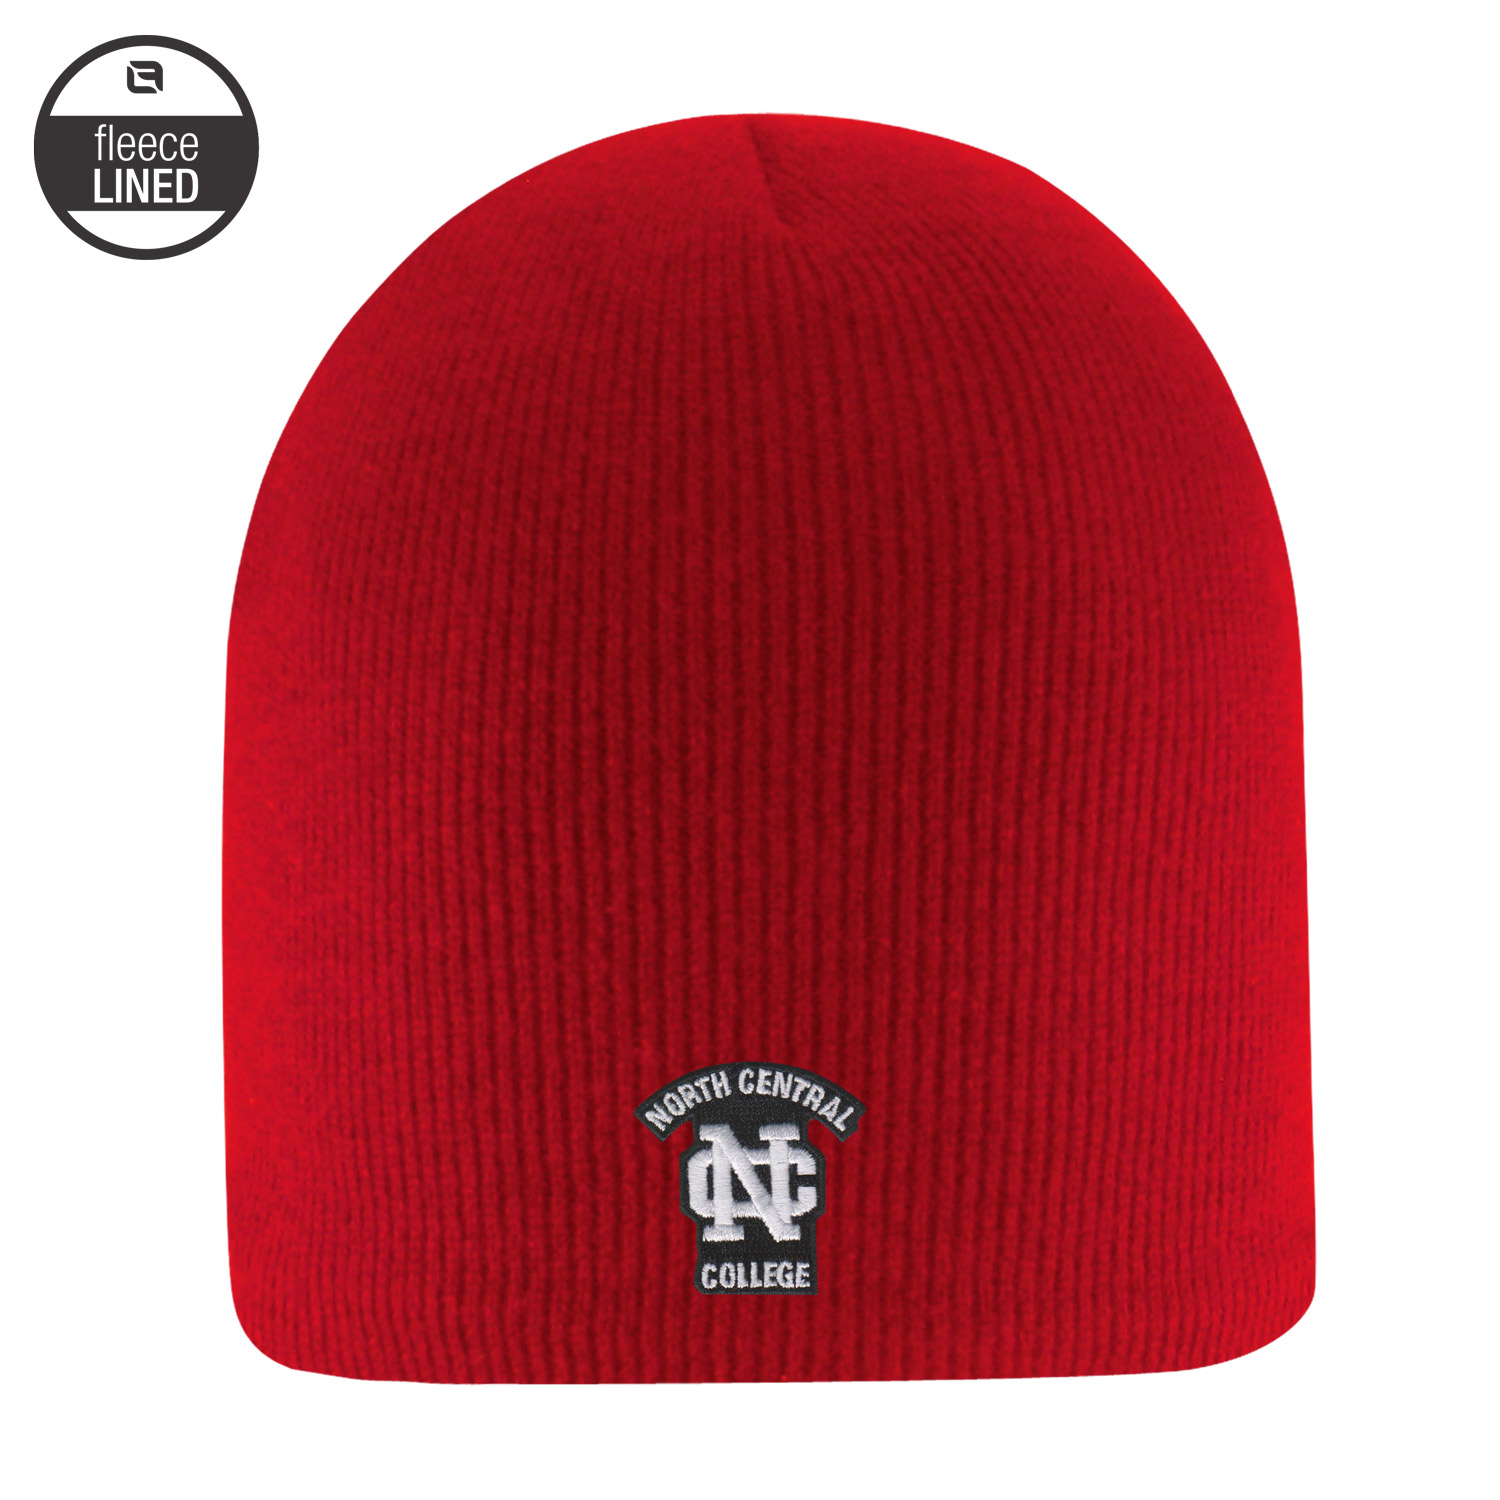 Image for the Red Chill Fleece Lined Knit Beanie (Hat) product